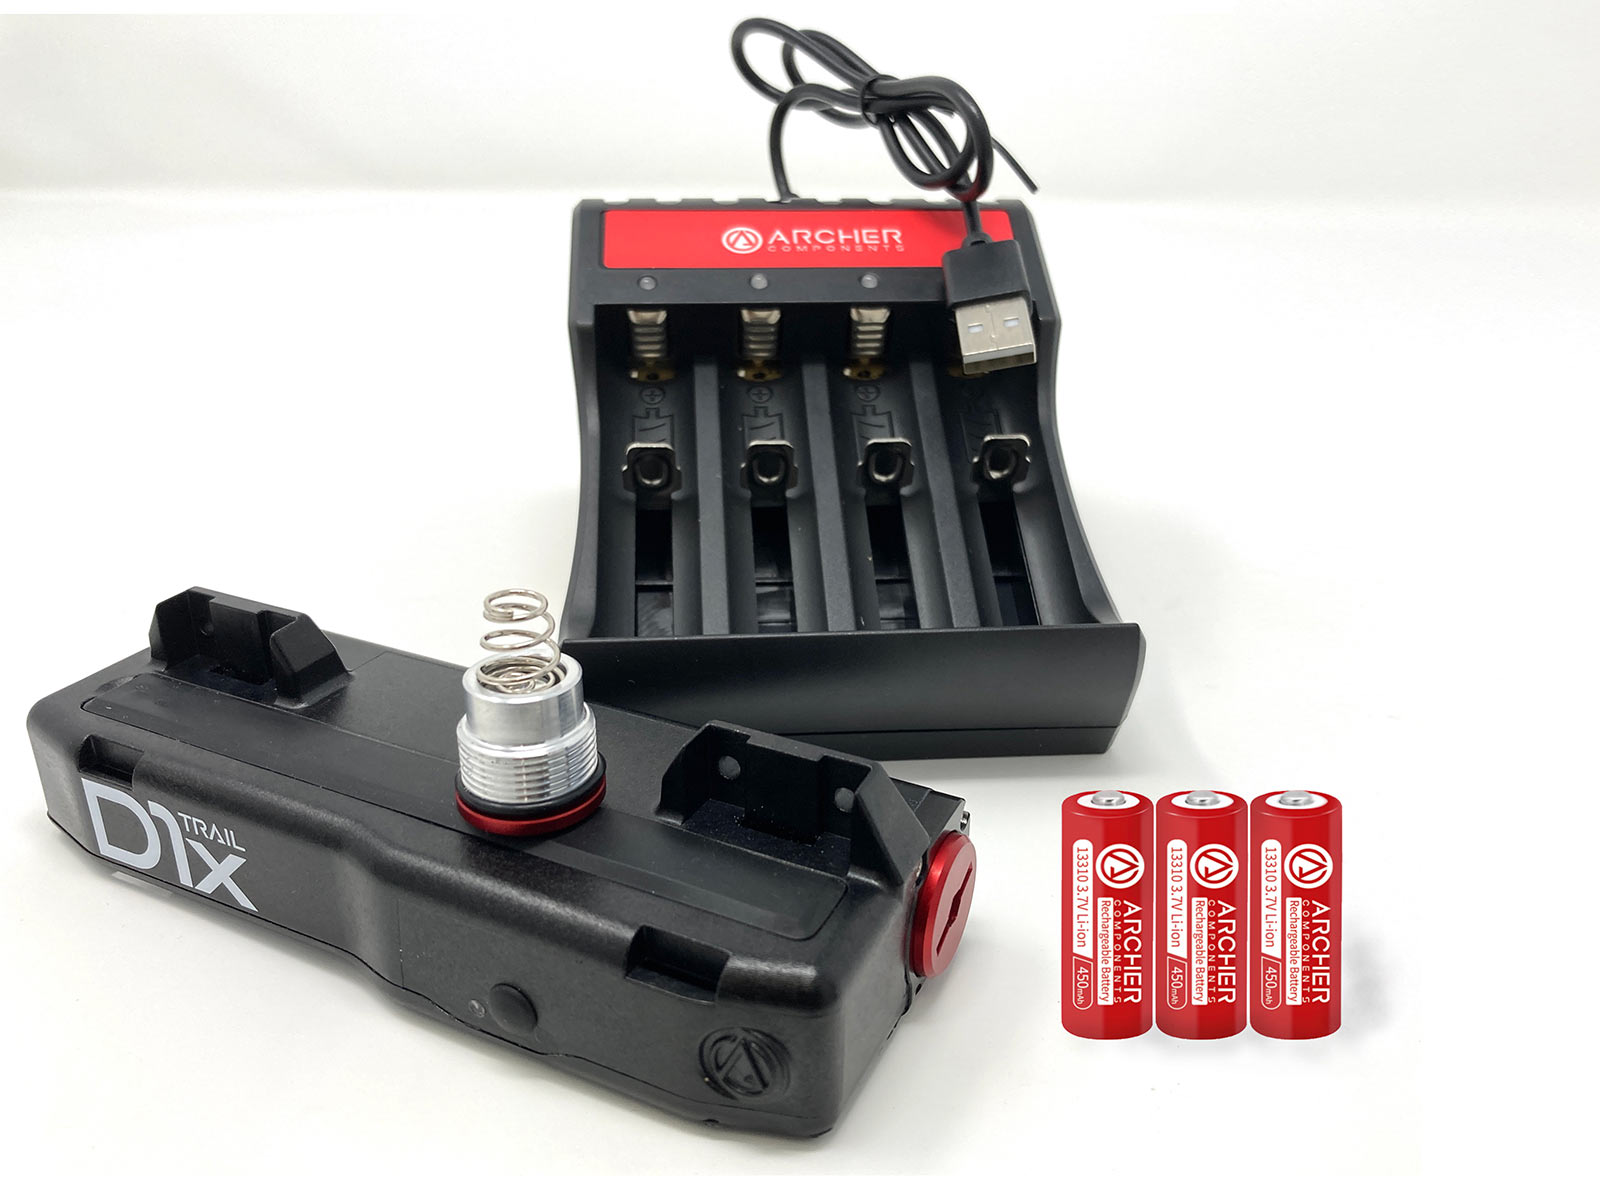 Archer D1x speeds up wireless shifting by dropping in faster batteries